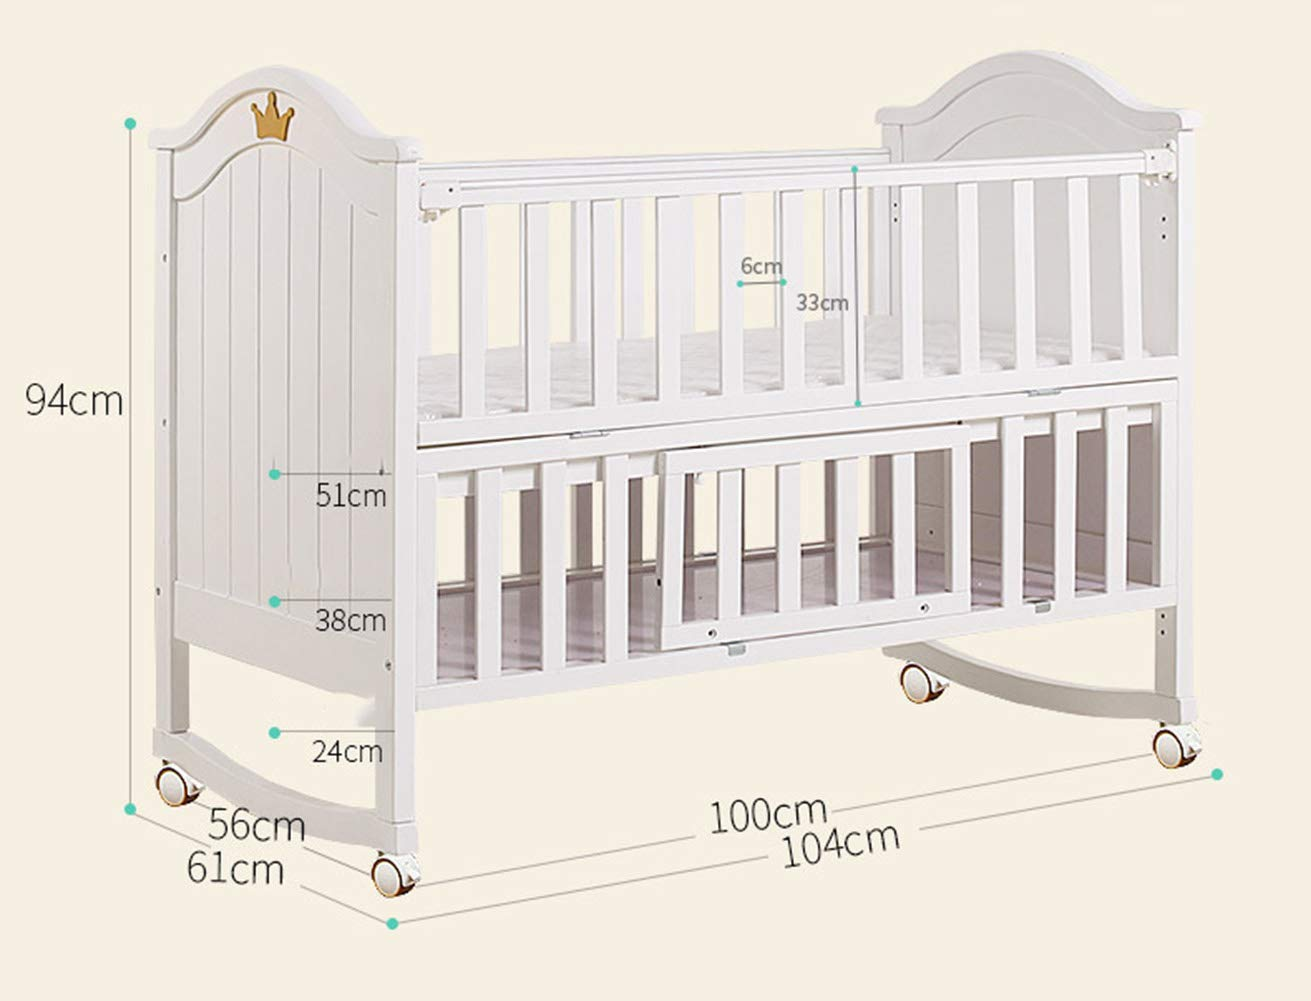 XUNMAIFLB Removable Toddler Bed, Baby Cot Bed, Multifunctional crib, solid wood baby bed (105 * 61cm/with roller) Safety XUNMAIFLB Life learning is more intimate: variable desk, smoother use, more functional, longer life. The splicing big bed is convenient for taking care: put down the half guardrail, splicing with the side of the adult bed, and taking care of the baby at close range at night. The splicable bed rails can be detached on one side of the bed; the splicing bed is just right; the night is convenient to take care of; 6